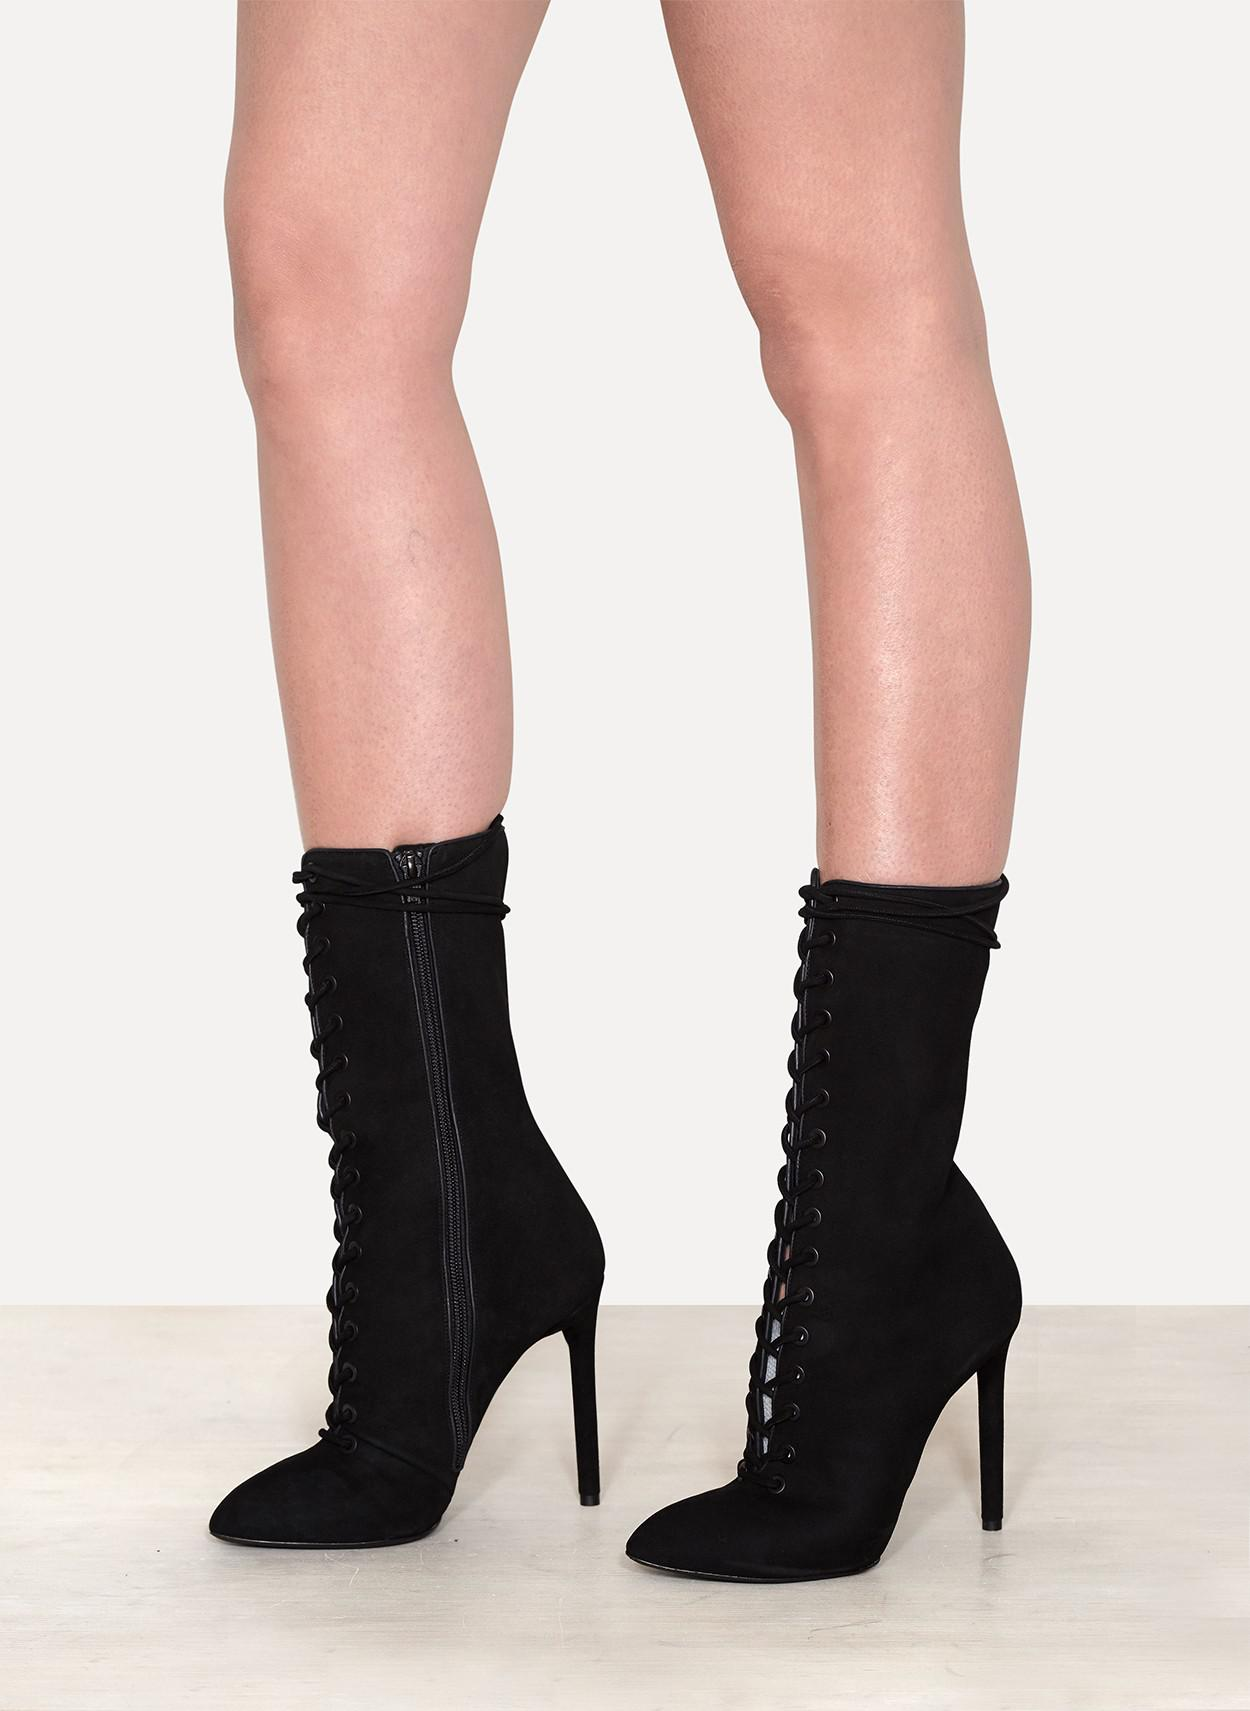 1478bce5ed7 Yeezy Lace Up Suede Boot in Black - Lyst